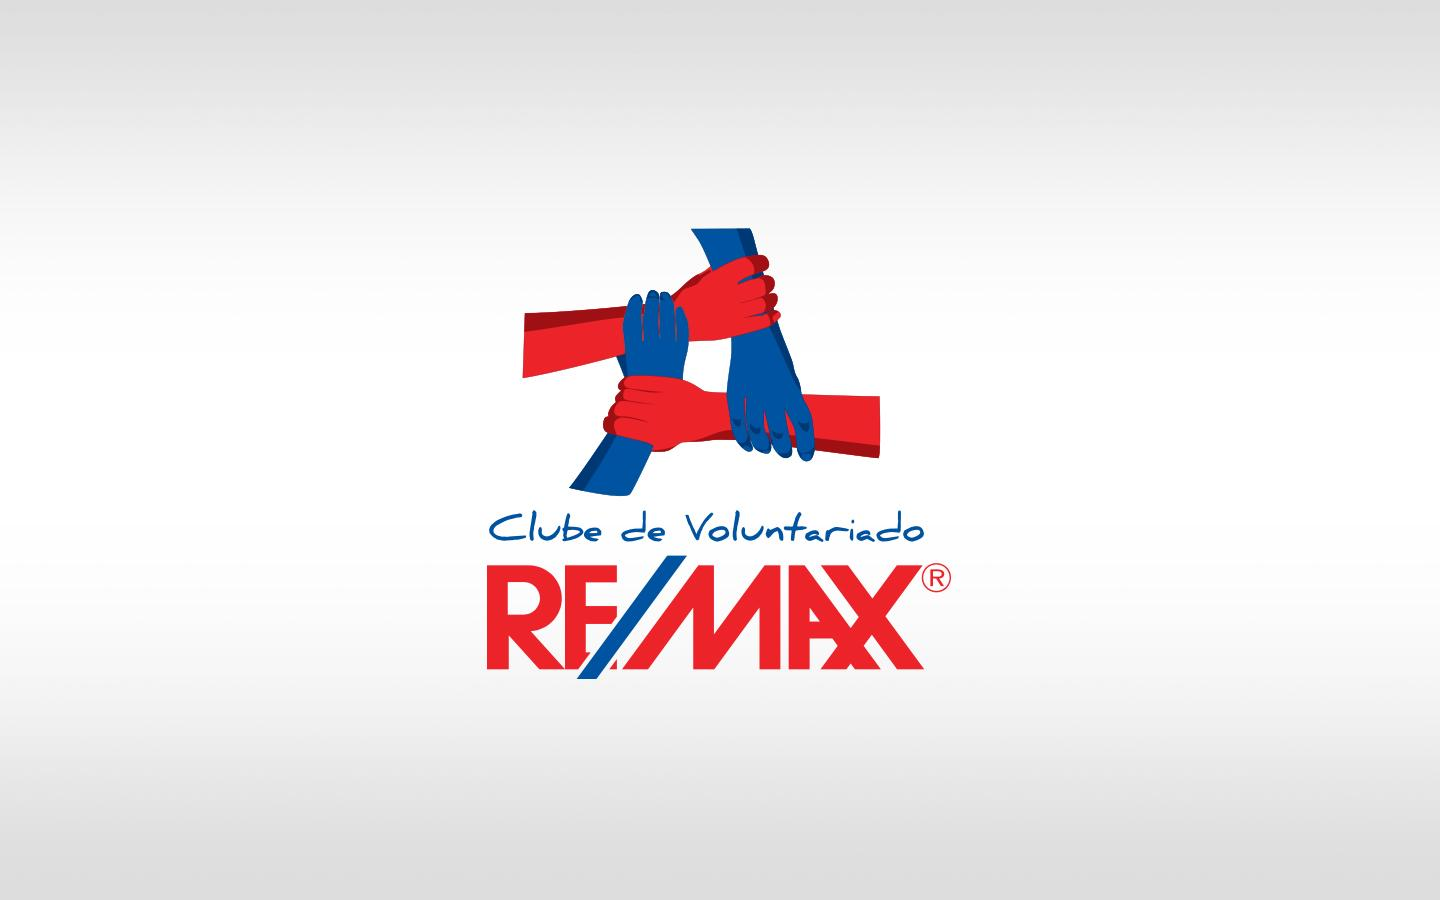 remax_work_2_1440x900